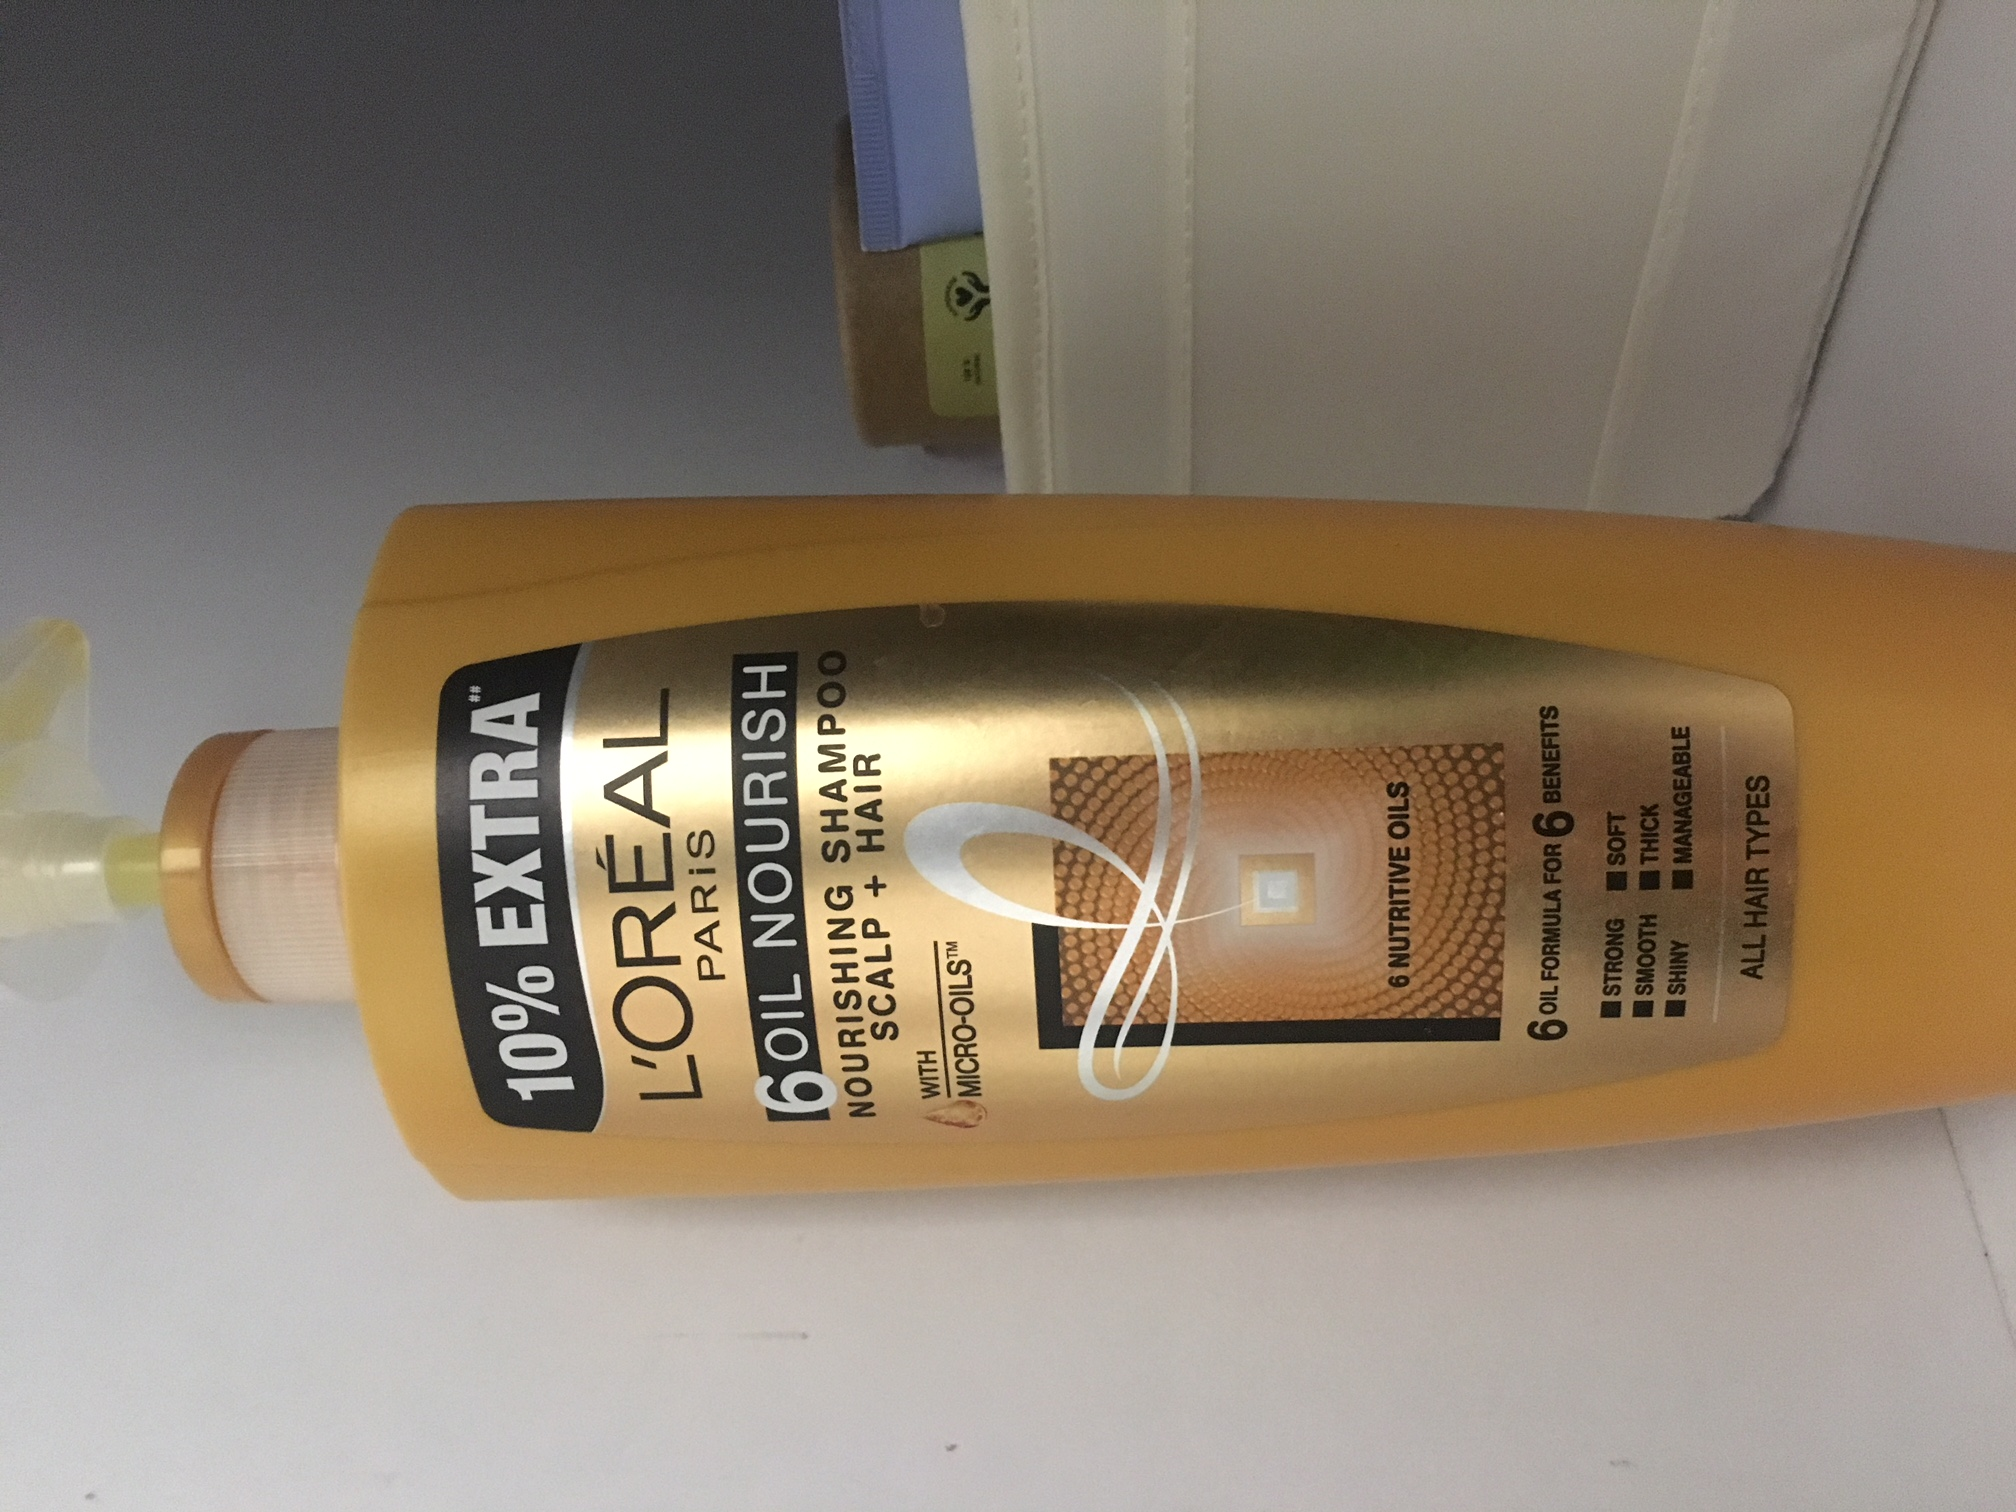 L'Oreal Paris 6 Oil Nourish Shampoo-leaves the hair very silky, but not ideal for combating naturally oily scalp and hair-By prernakapur